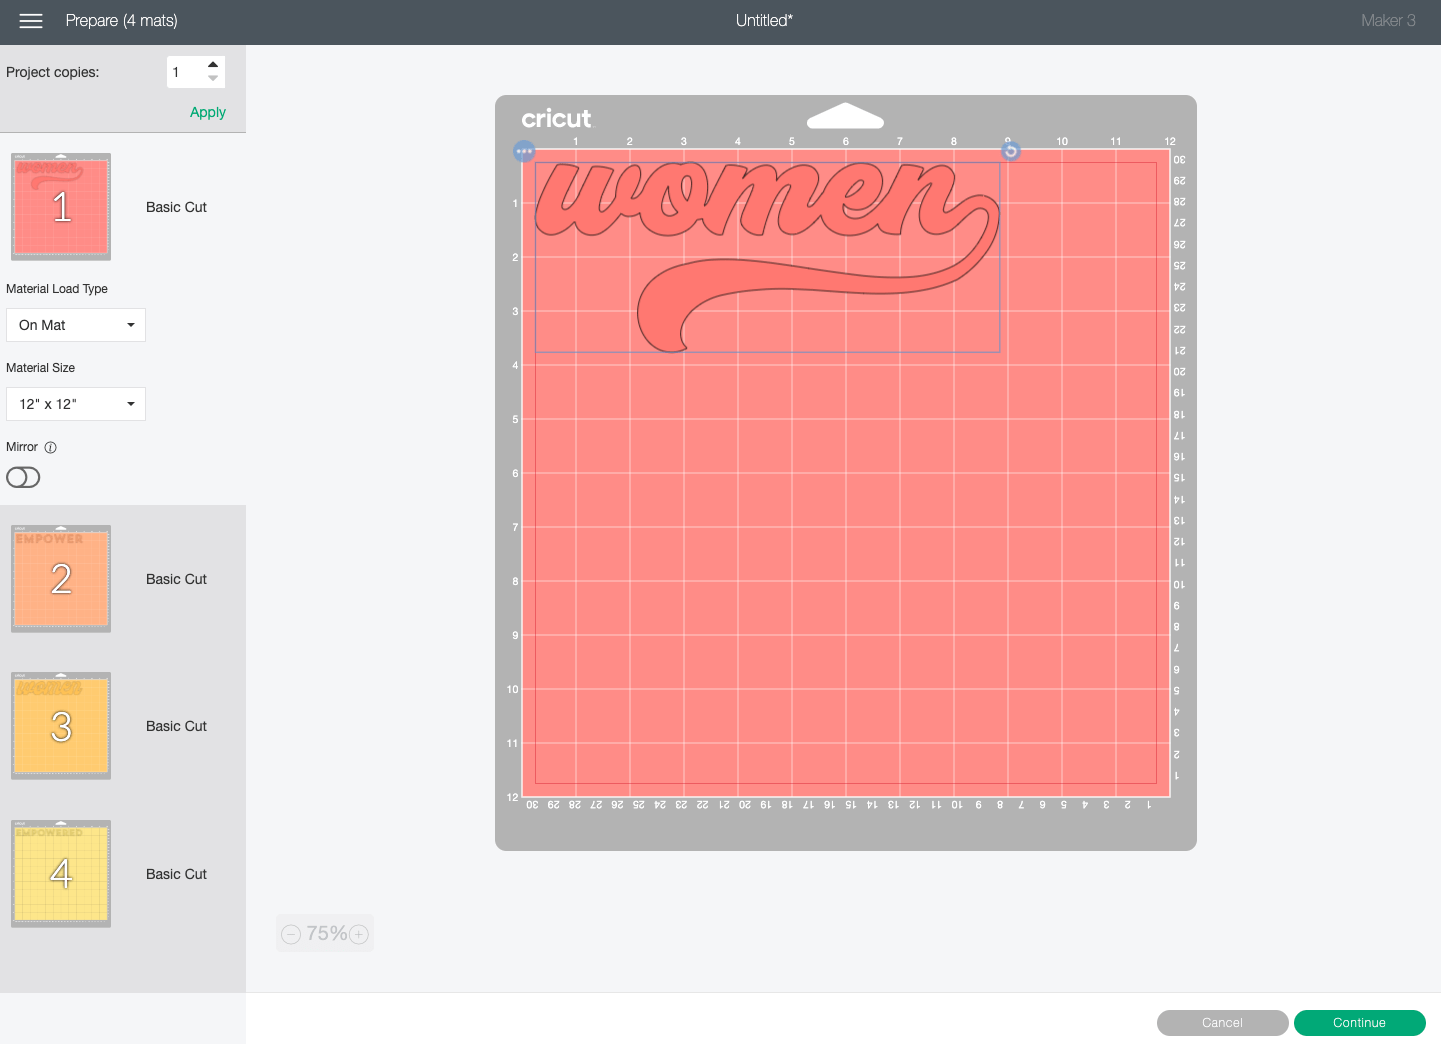 Cricut Design Space: Prepare Screen showing different parts of the image on different mats.